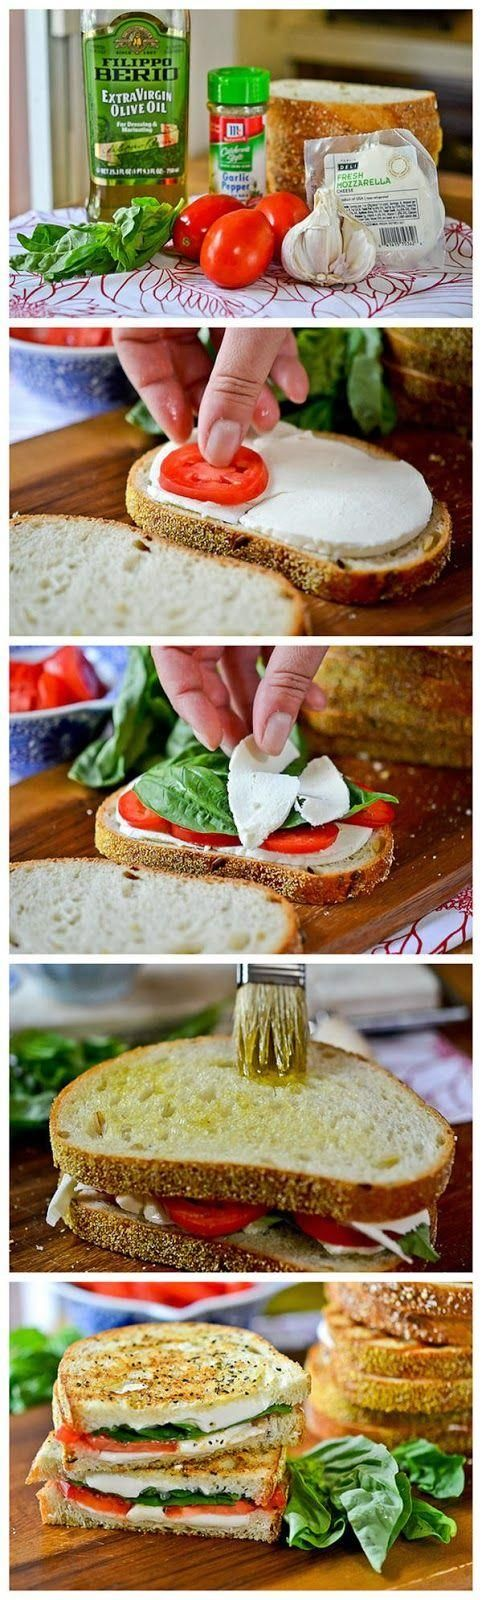 Grilled Margherita Sandwiches - Joybx